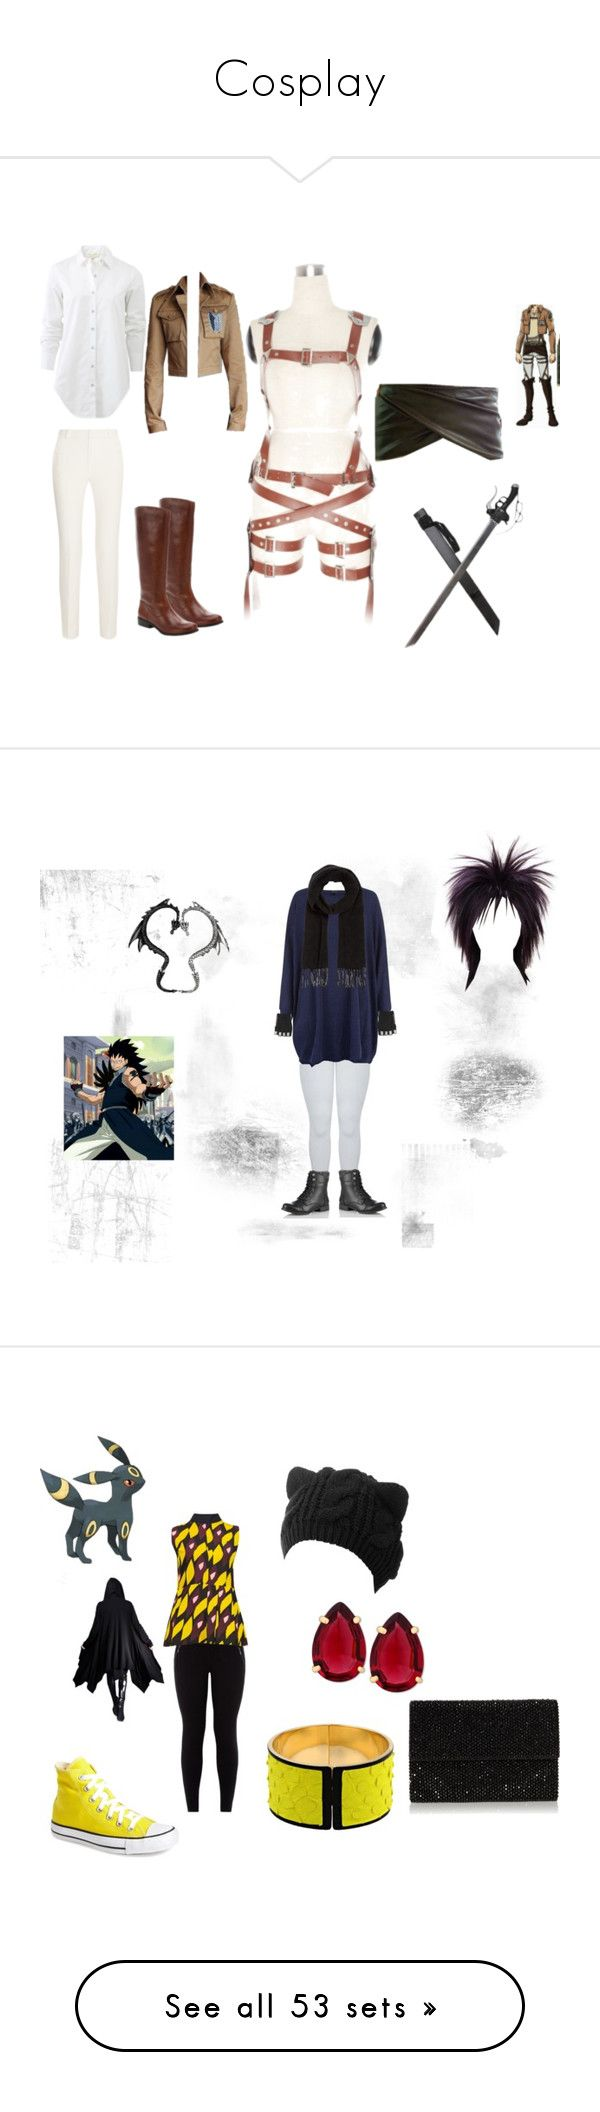 """""""Cosplay"""" by destiny-demon ❤ liked on Polyvore featuring rag & bone, Roland Mouret, Ciao Bella, Majesty Black, Comptoir Des Cotonniers, Wigs2You, men's fashion, menswear, Converse and New Look"""